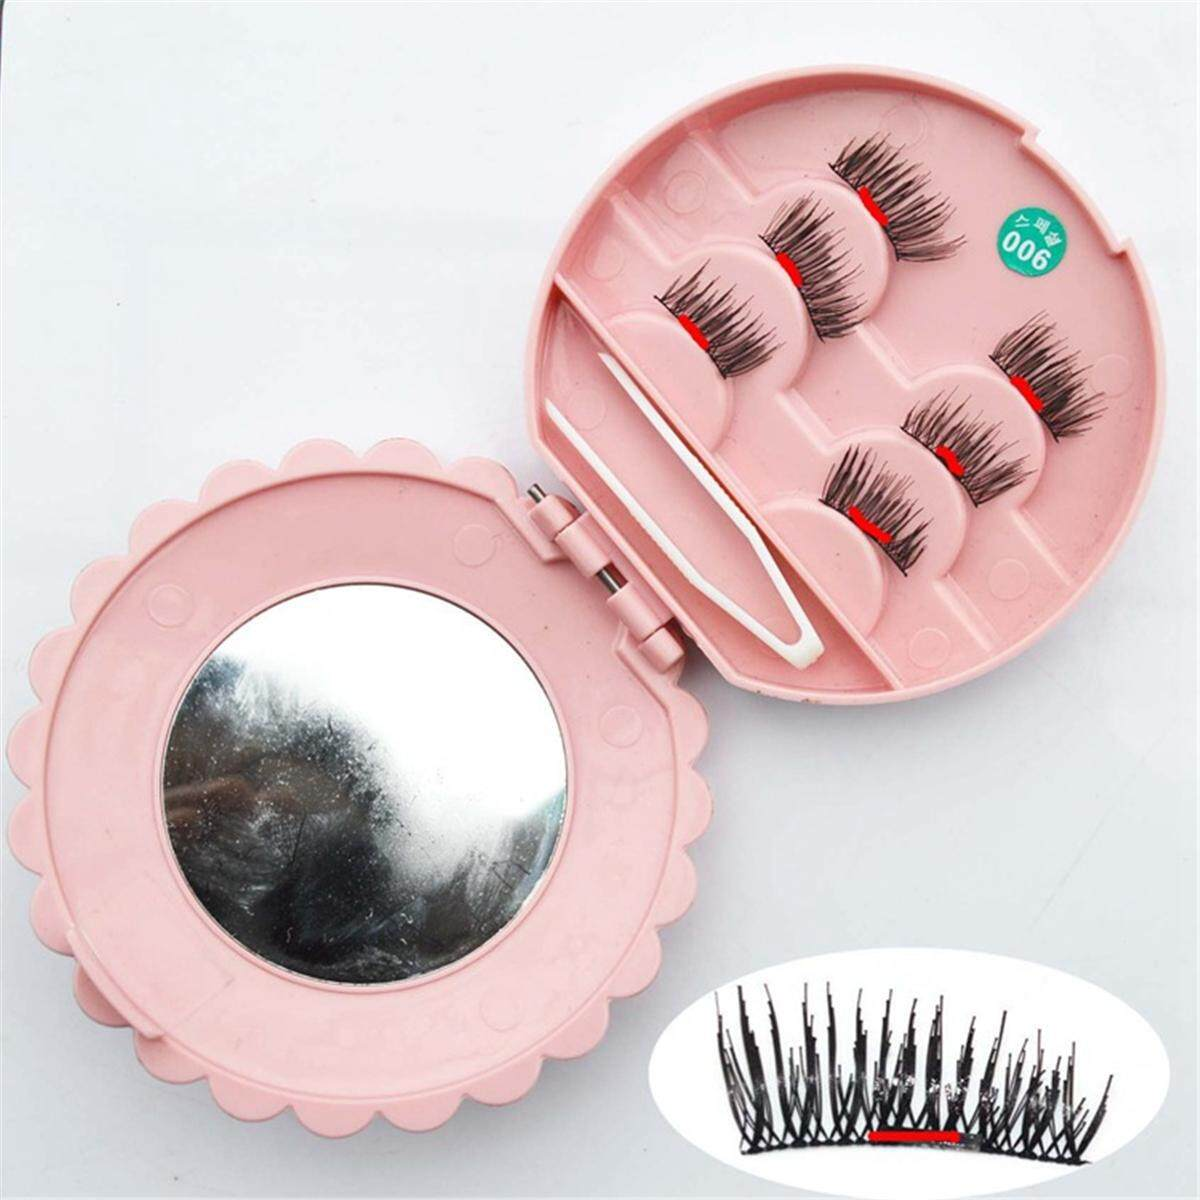 6pcs Reusable Box 3d Magnetic False Eyelashes Long Natural Eye Lashes Extension By Glimmer.